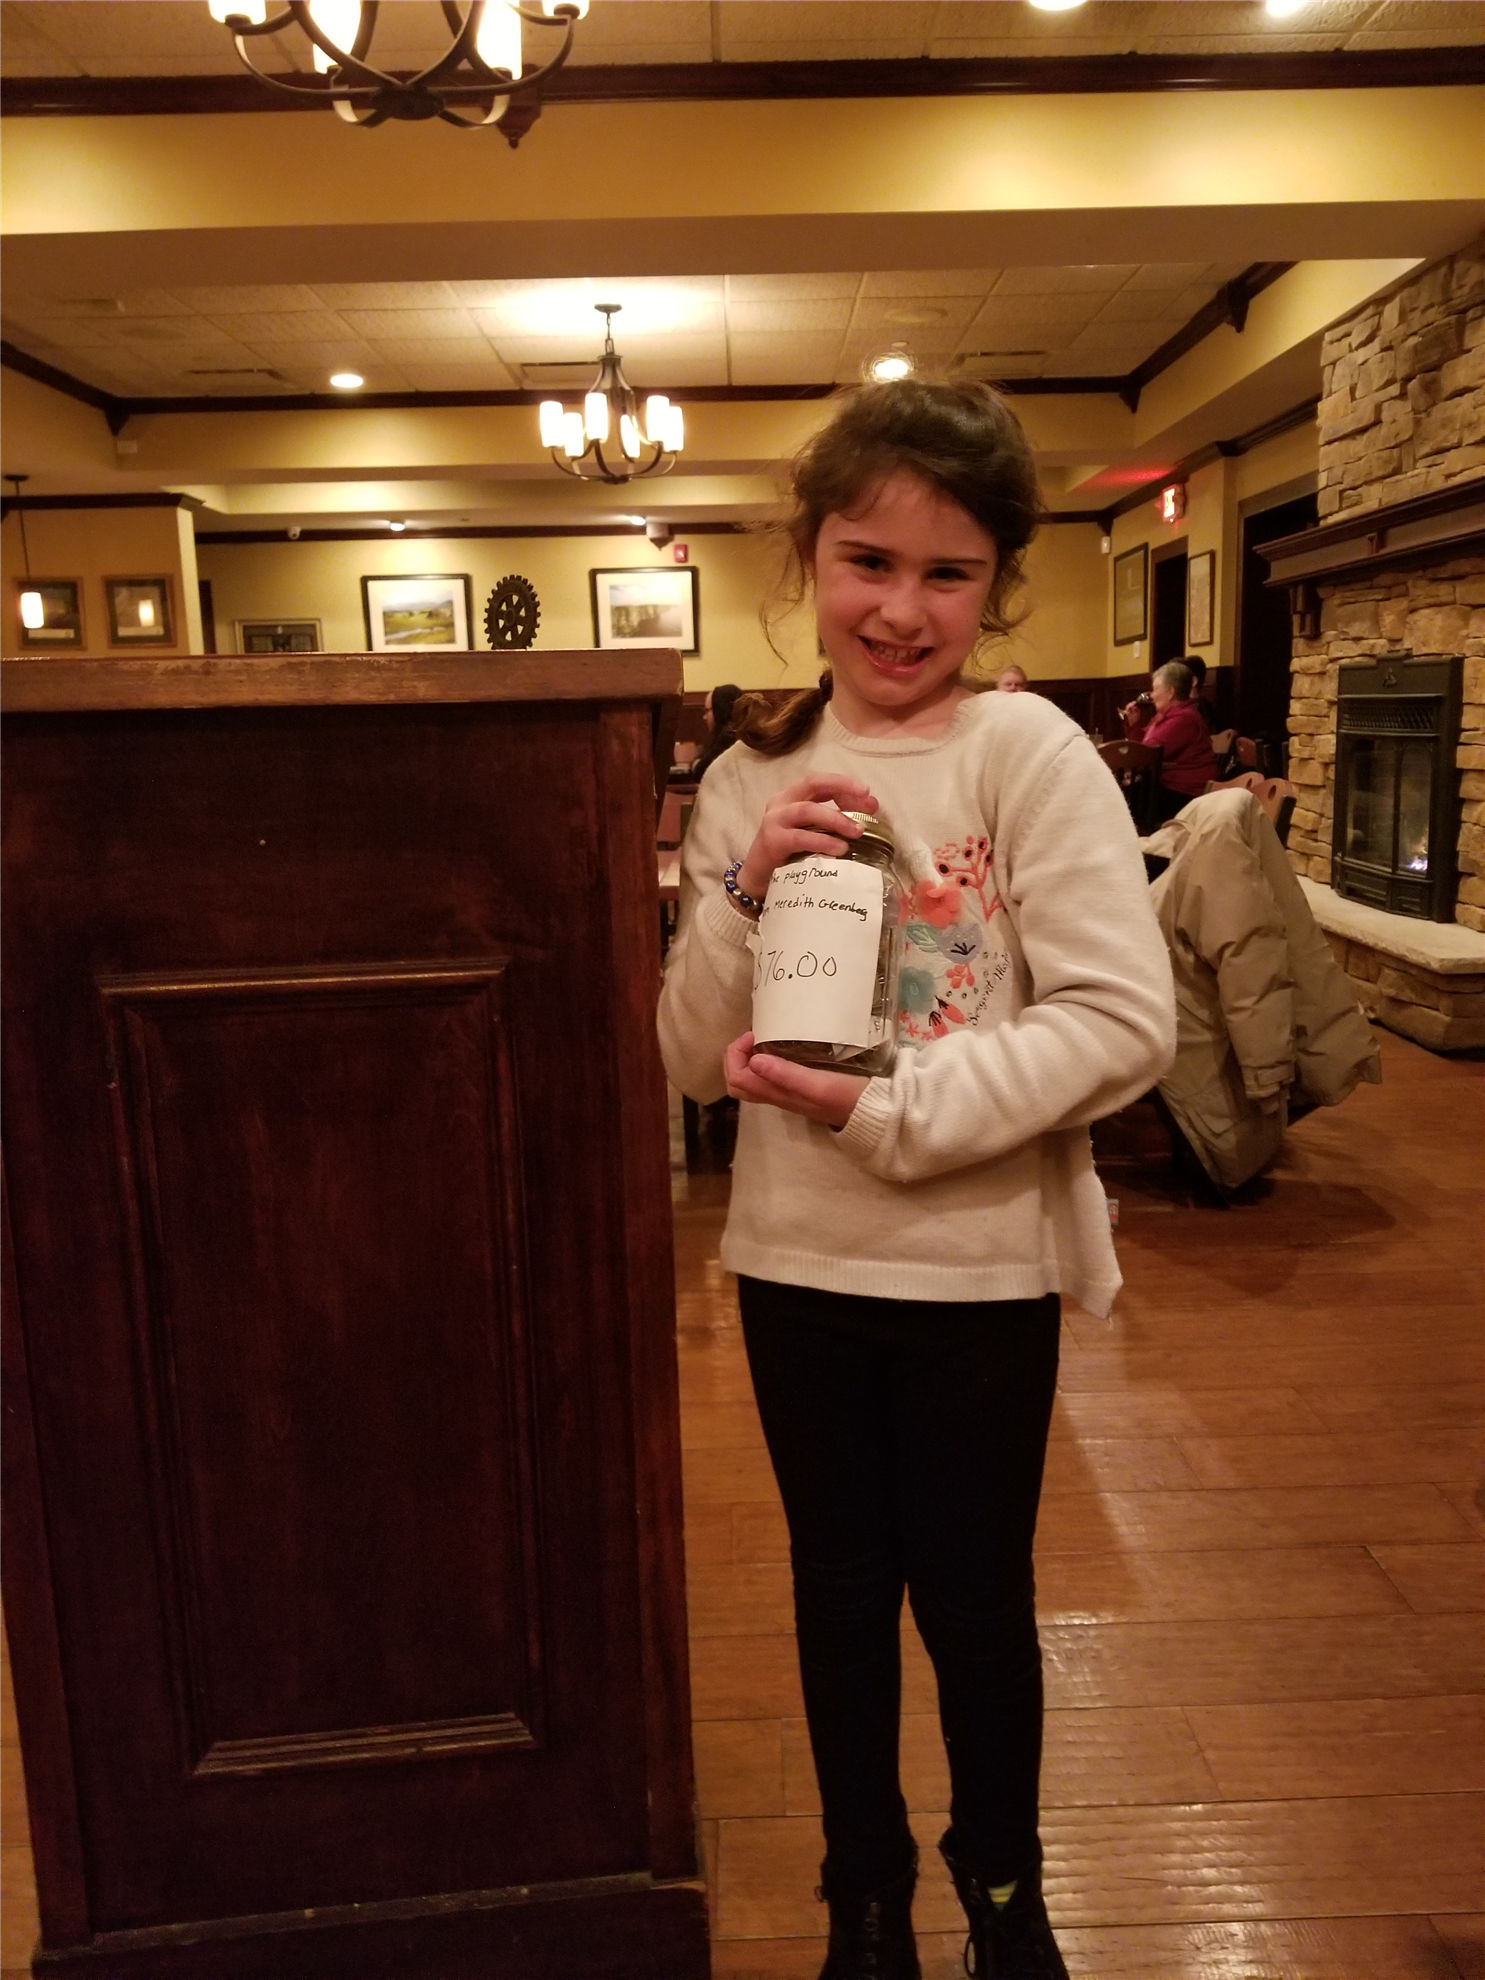 Meredith Radi collected Money for the Mendon Community Playground